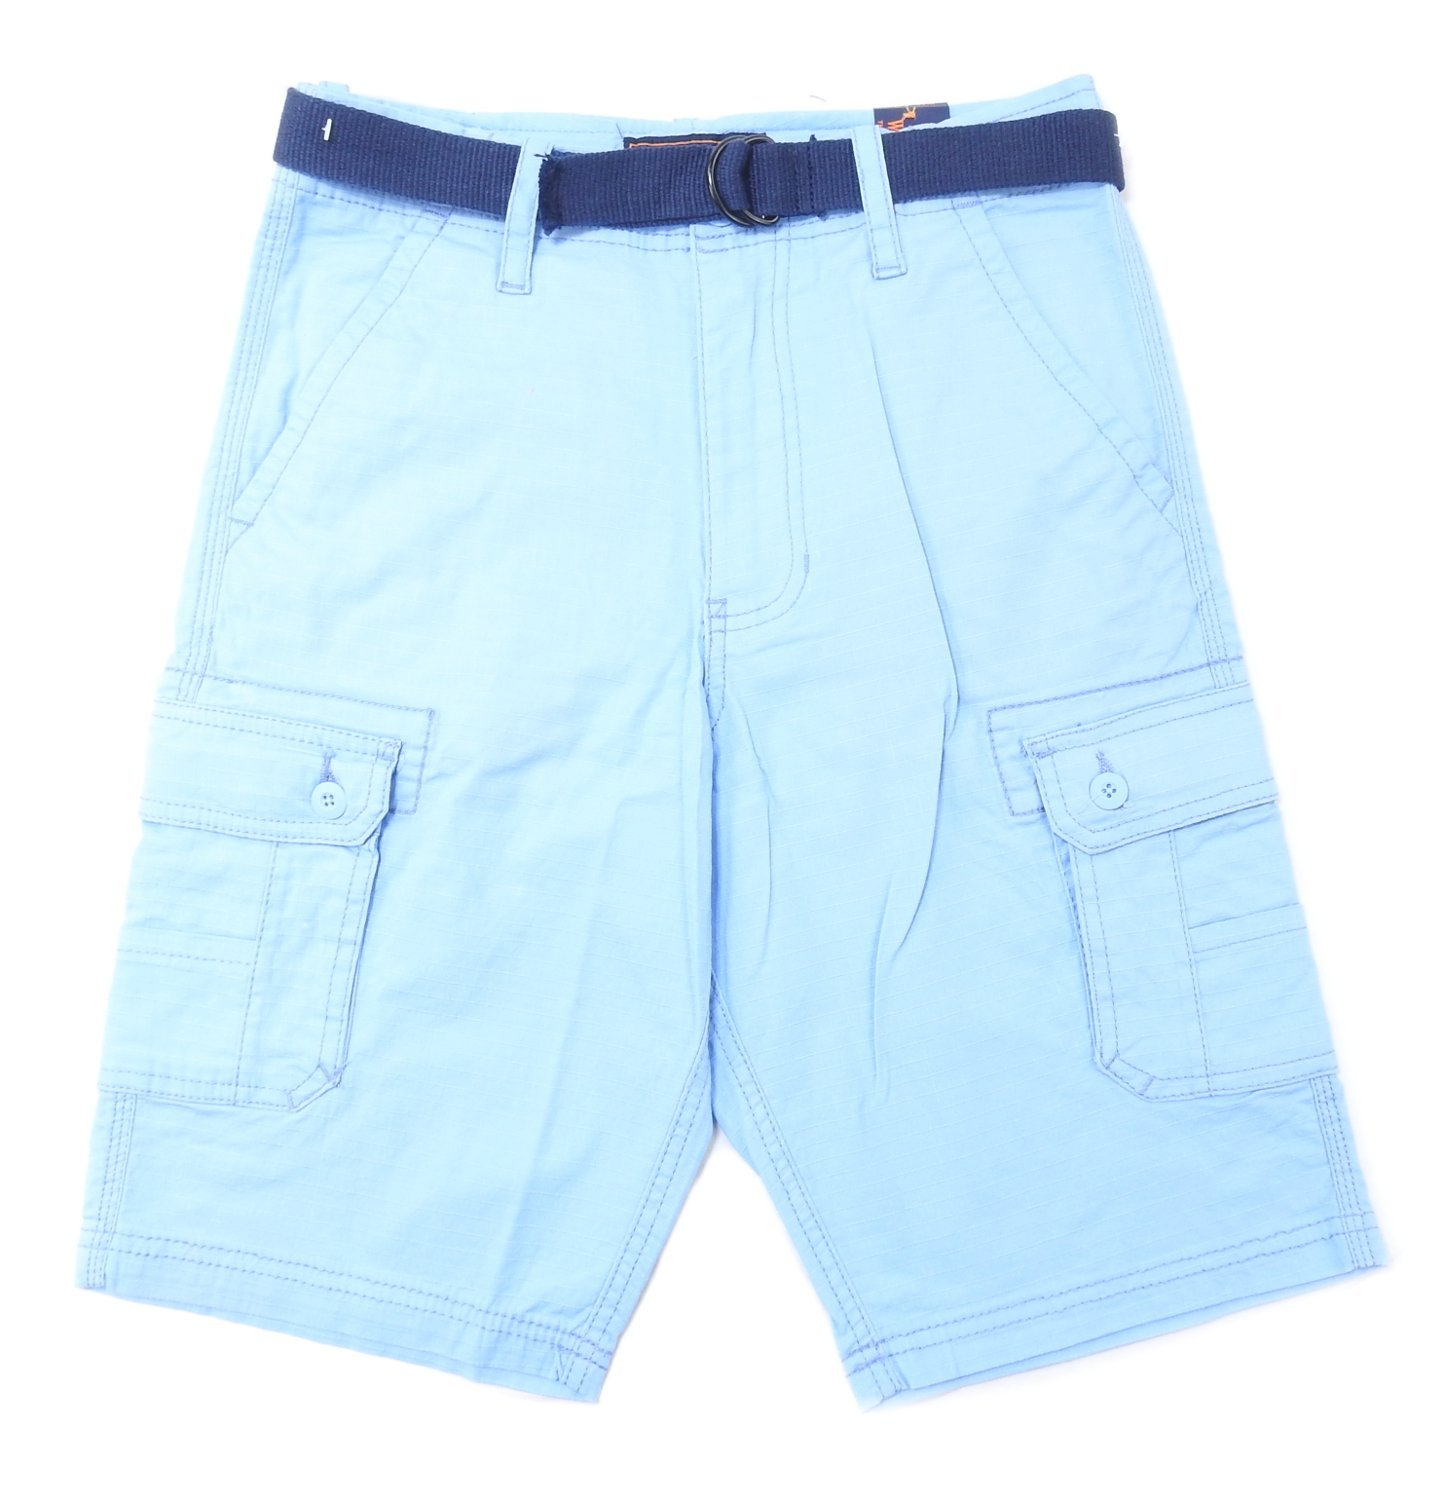 00b5b502f1a7 Get Quotations · Wear First Boy s Size 12 Belted Cargo Shorts